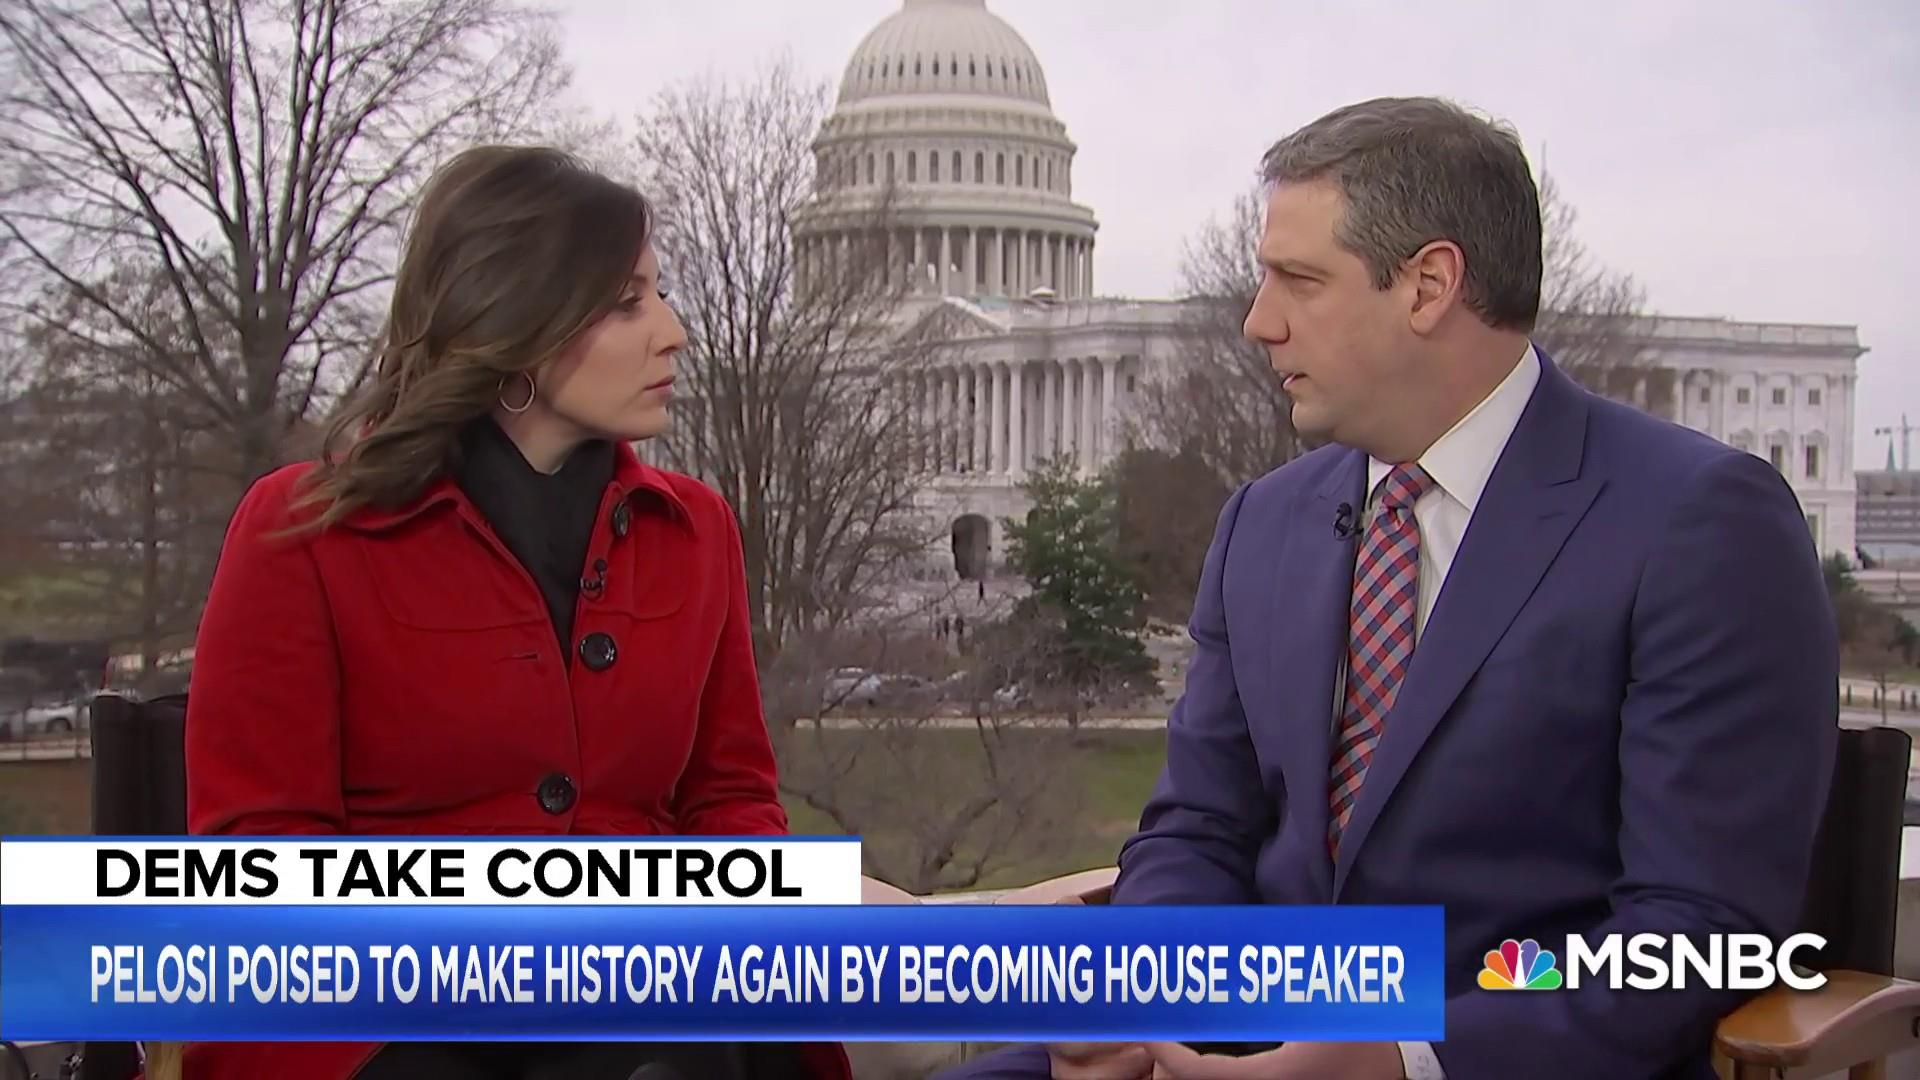 What will Democrats do with control of the House?